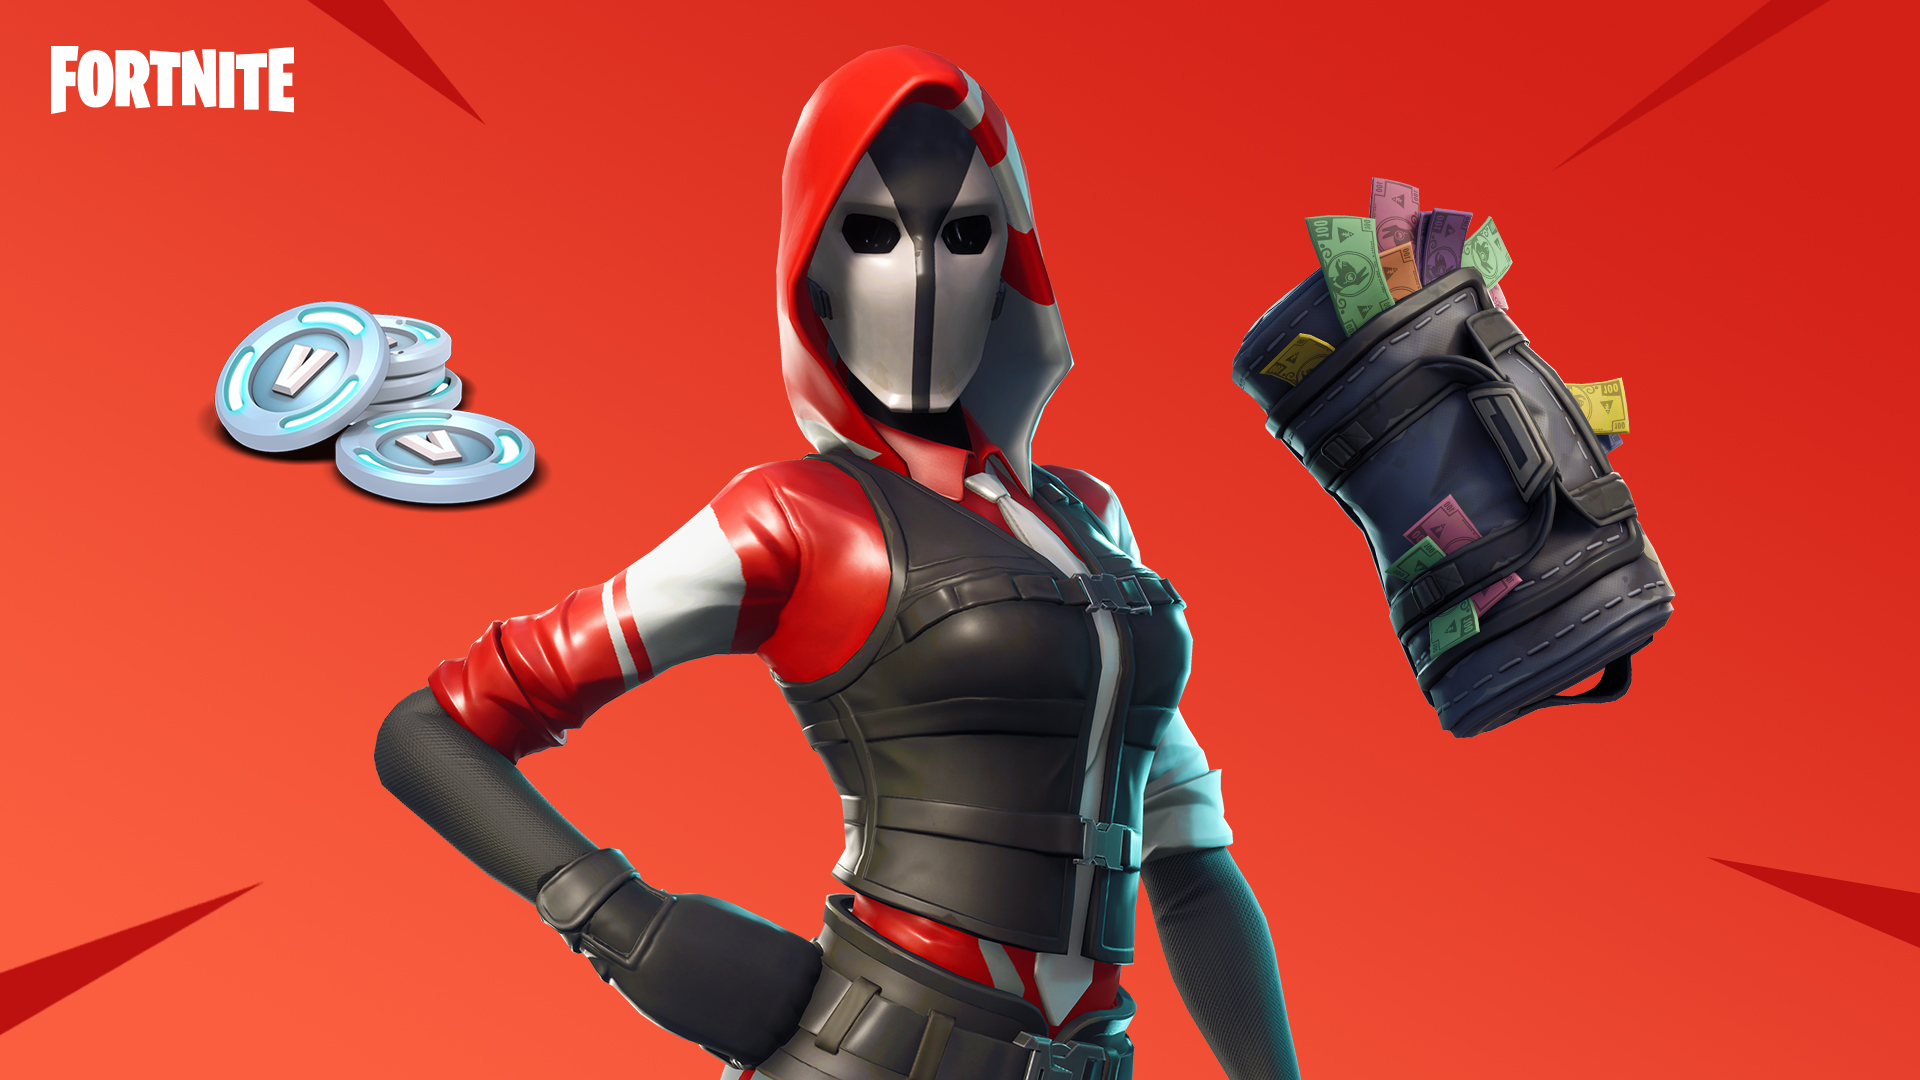 Fortnite Ace Outfit and Swag Bag Back Bling